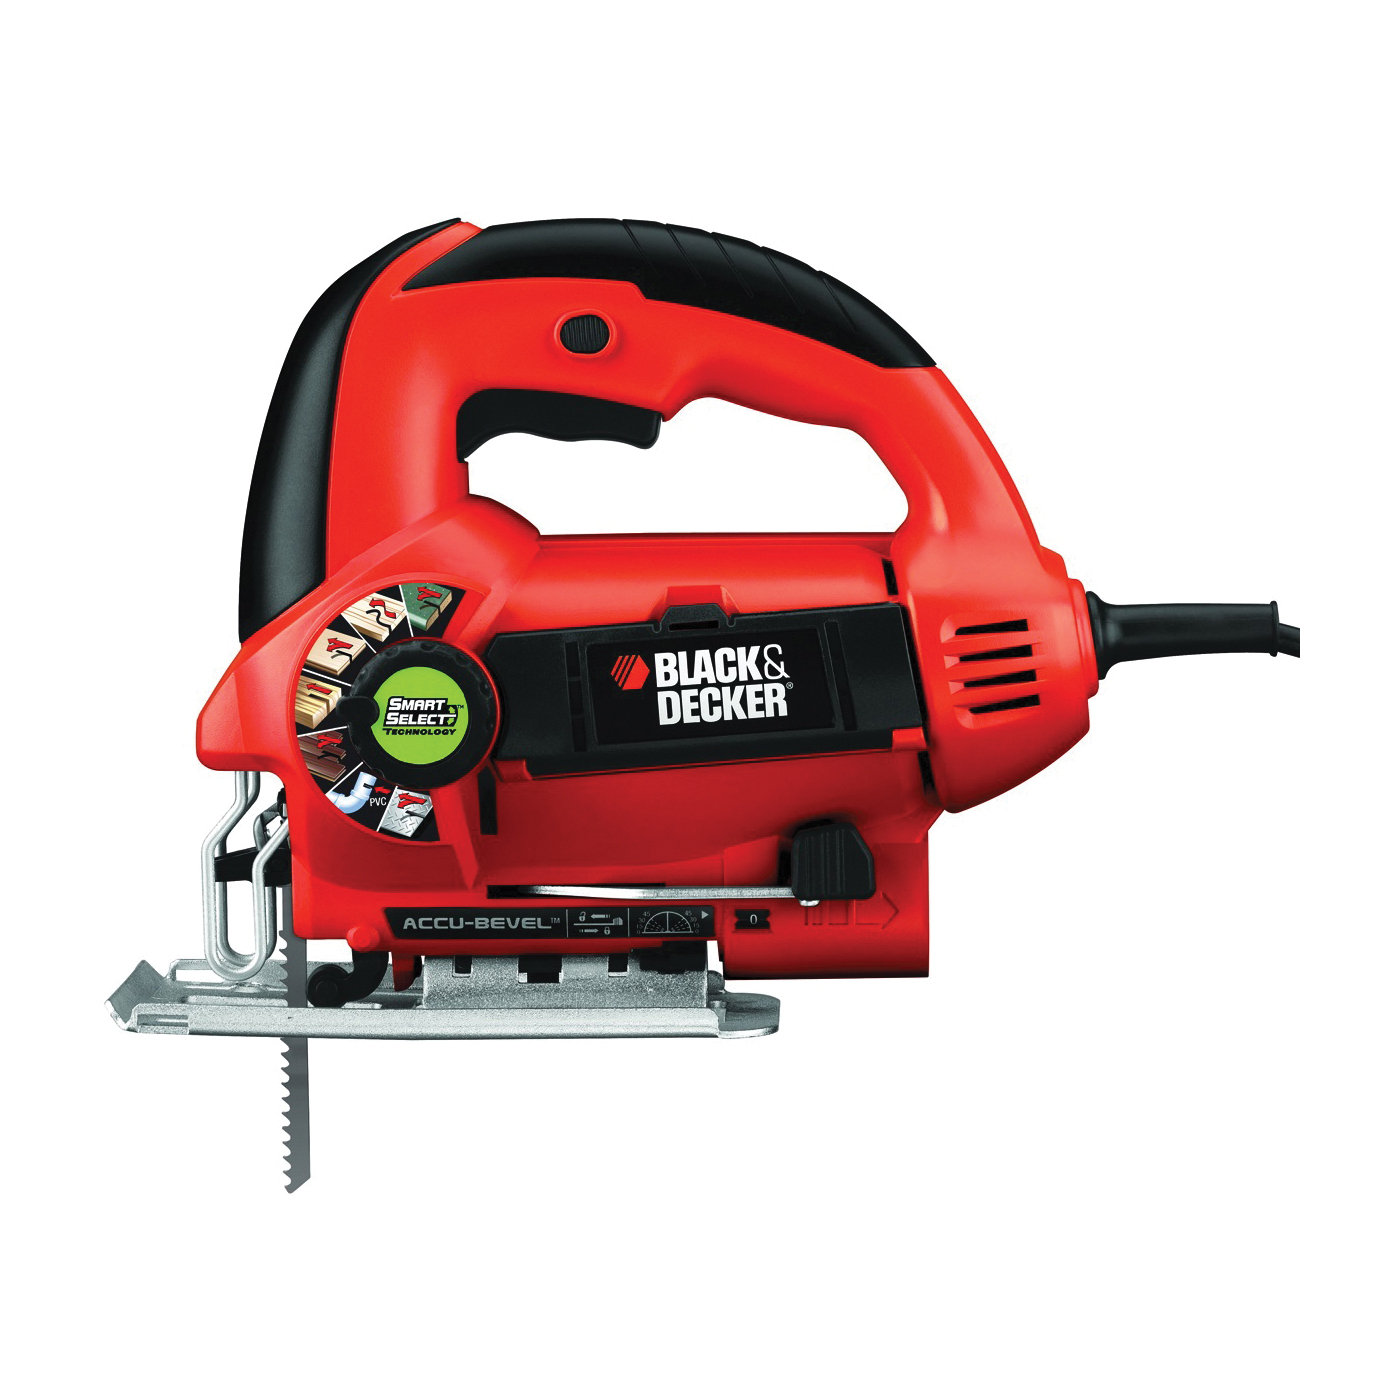 Picture of Black+Decker BDEJS600C Jig Saw, 110 V, 5 A, 3/4 in L Stroke, 3000 spm SPM